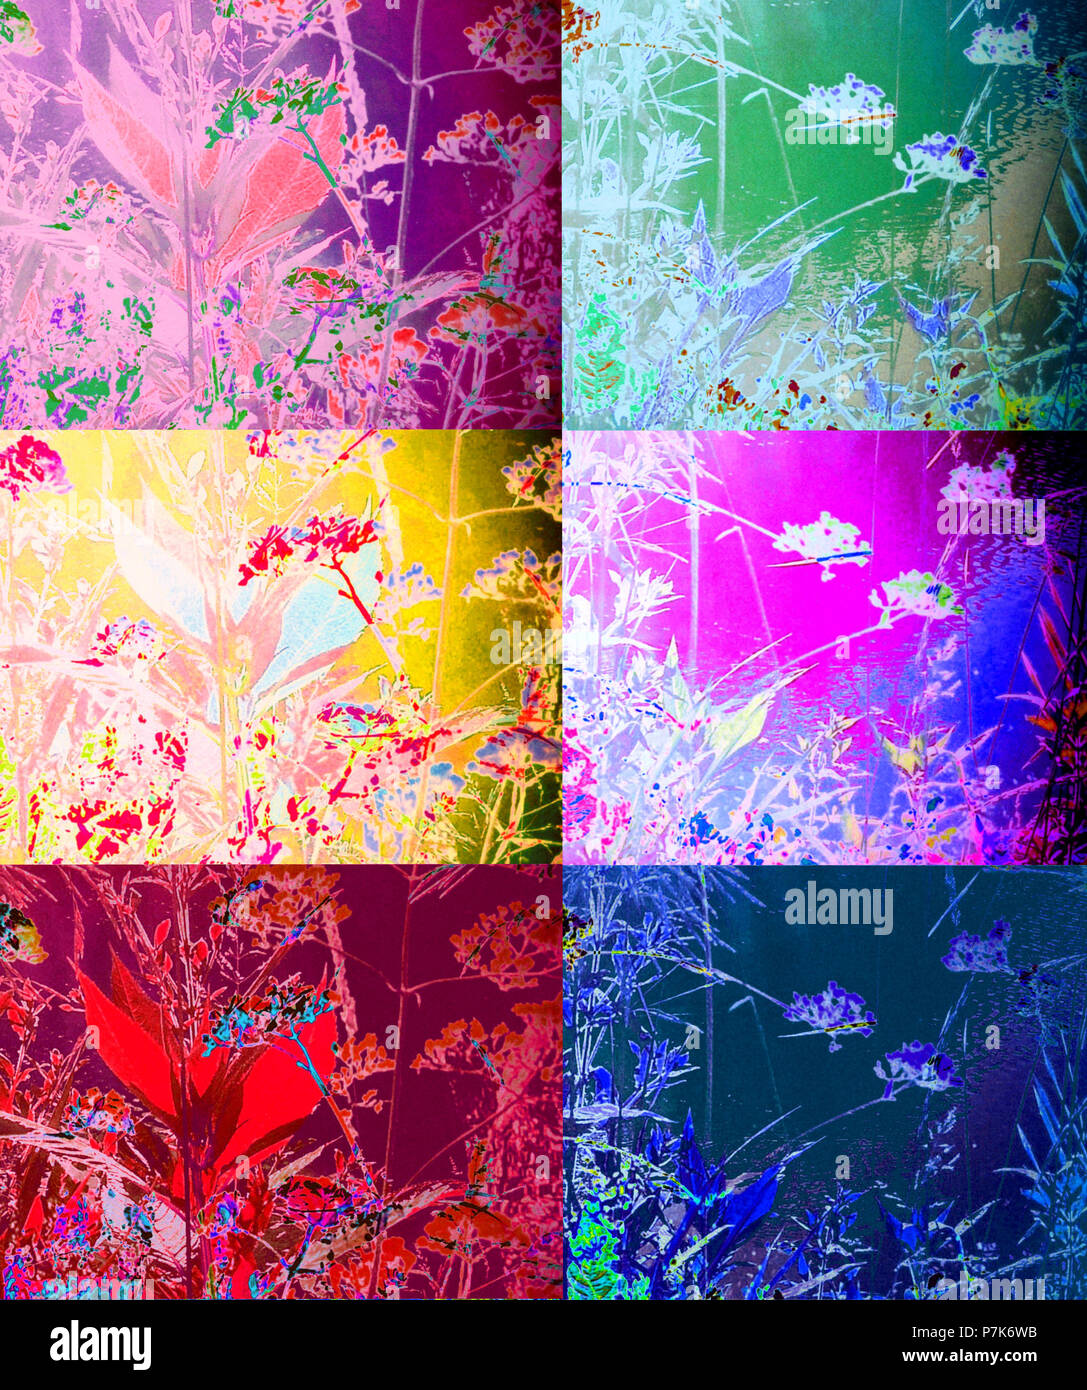 Collage of multi-layered photographs of branches, colored - Stock Image